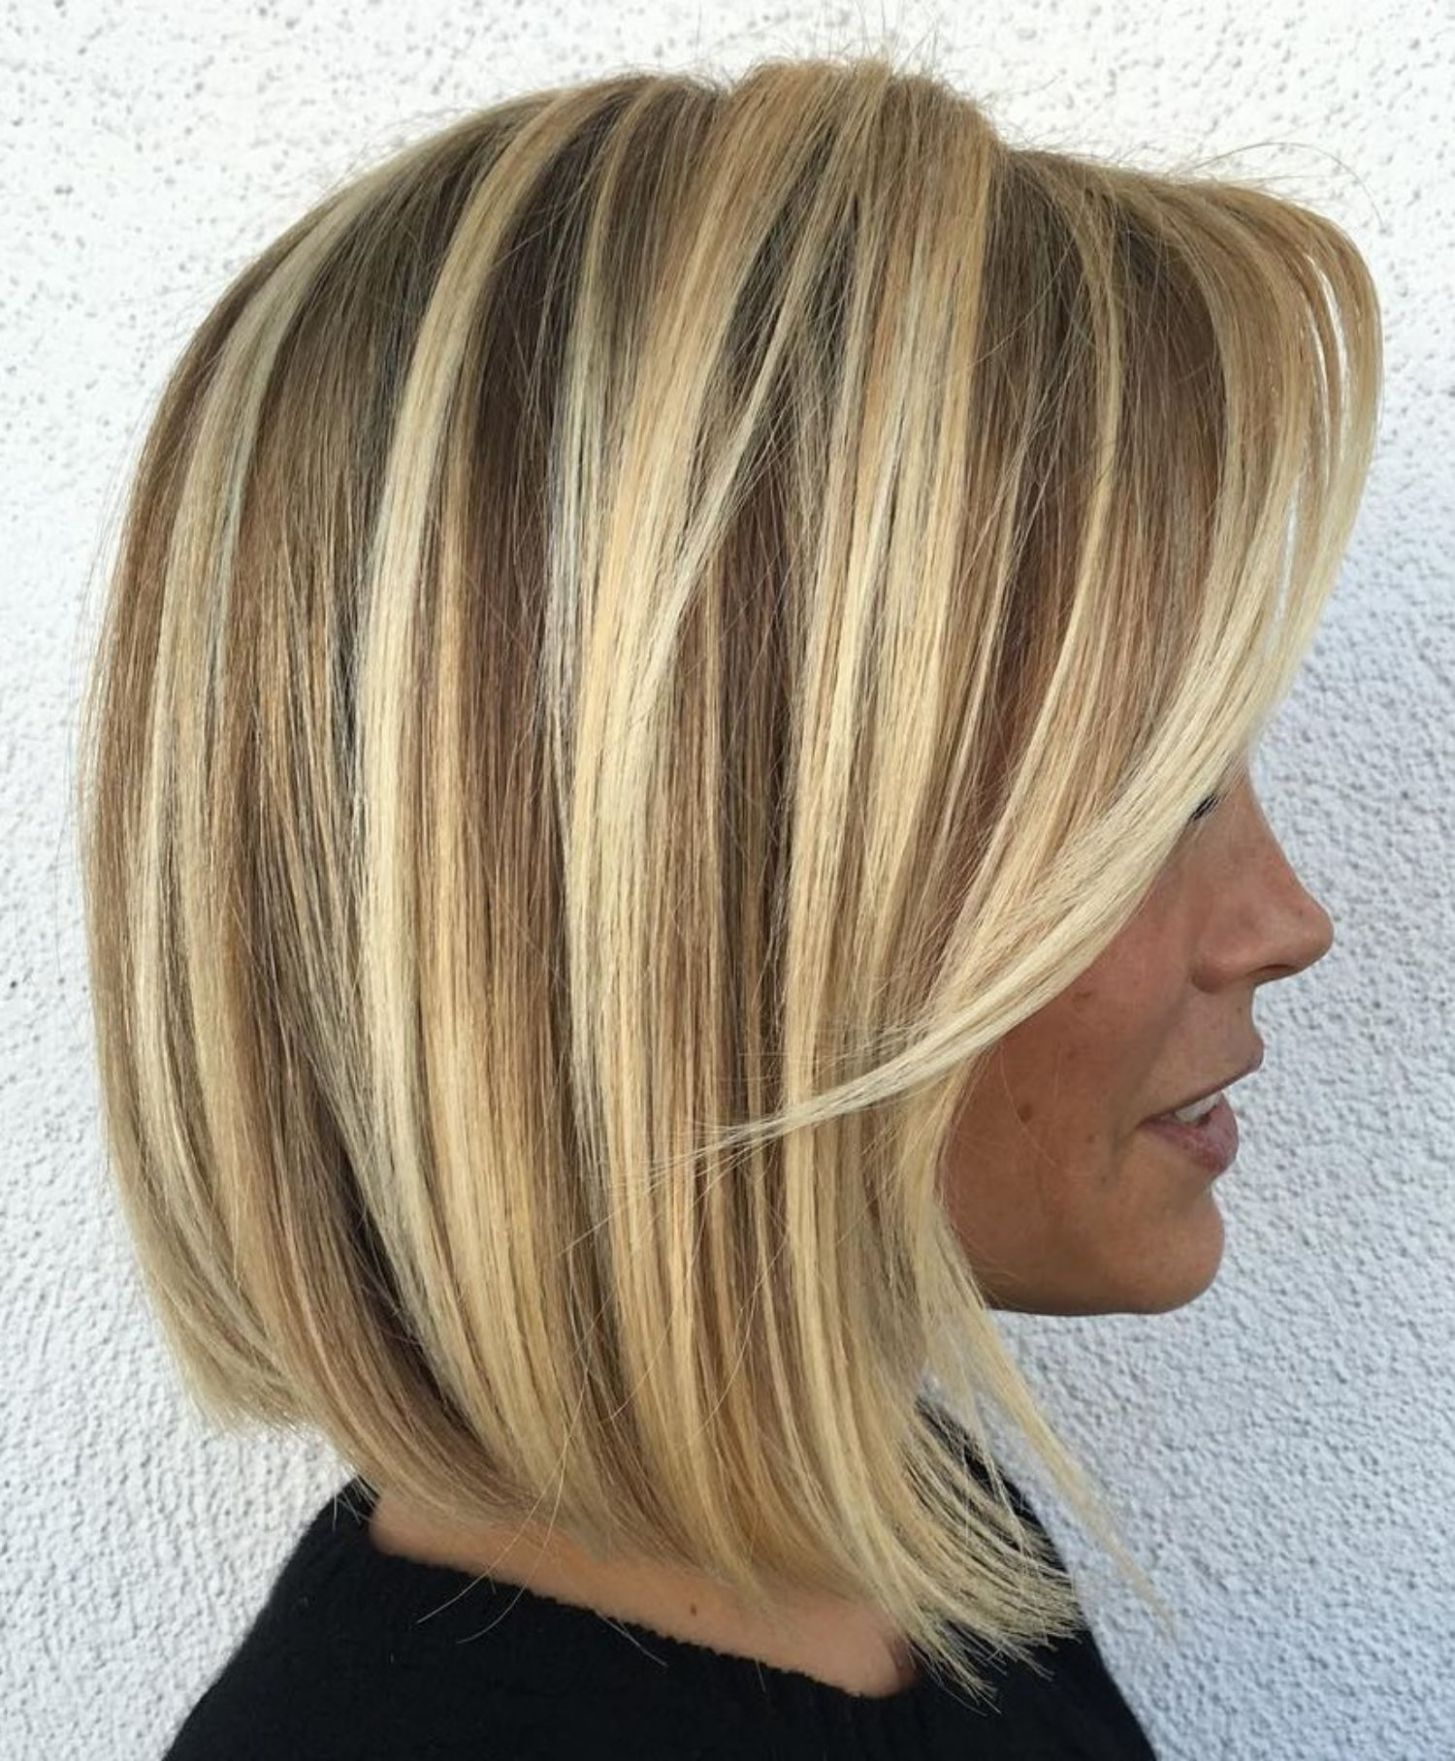 22++ Bob hairstyles for thin hair over 40 ideas in 2021